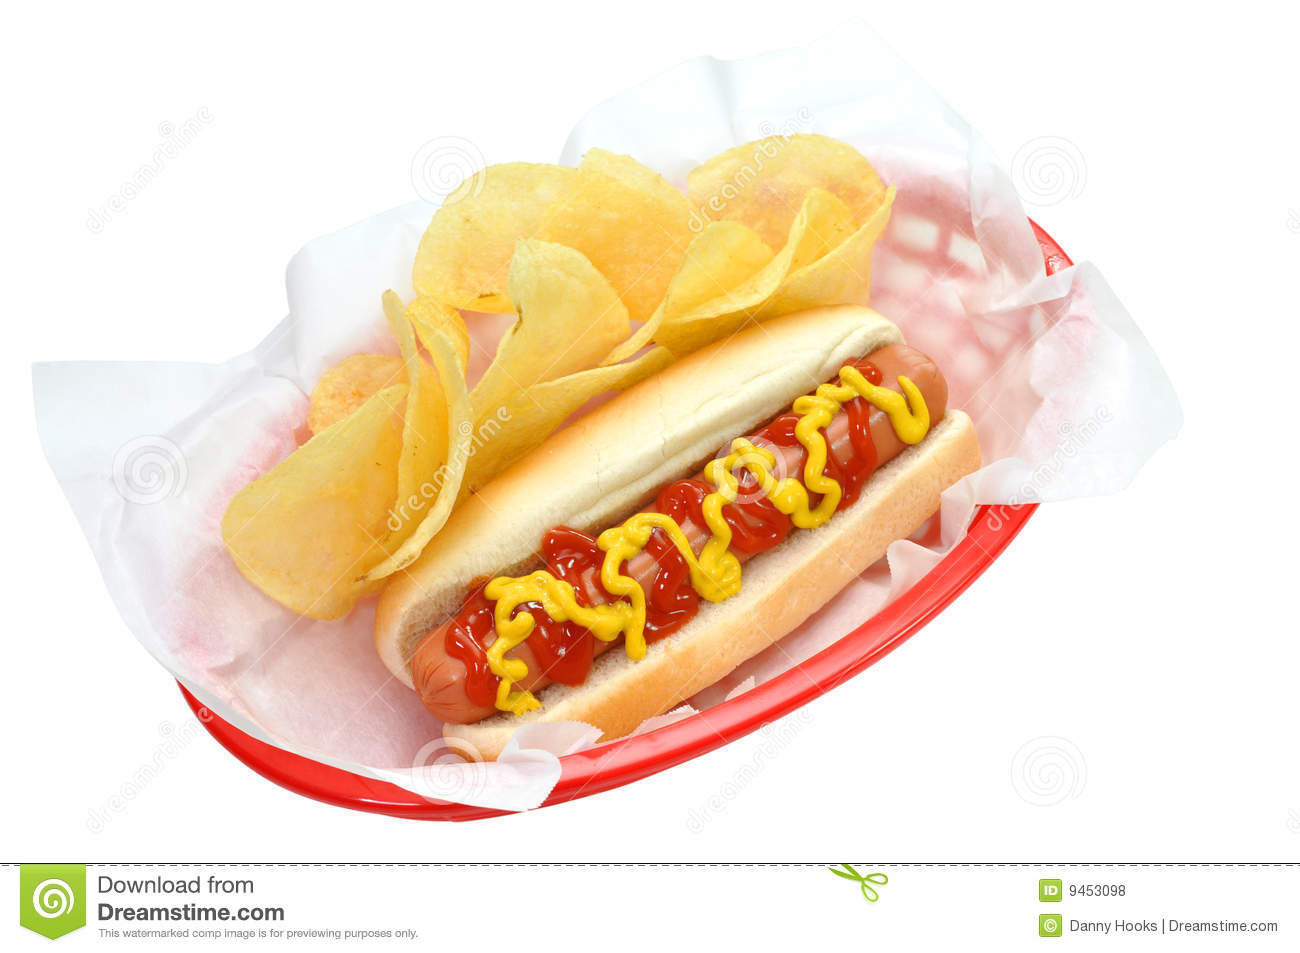 Is Hot Dog Fattening